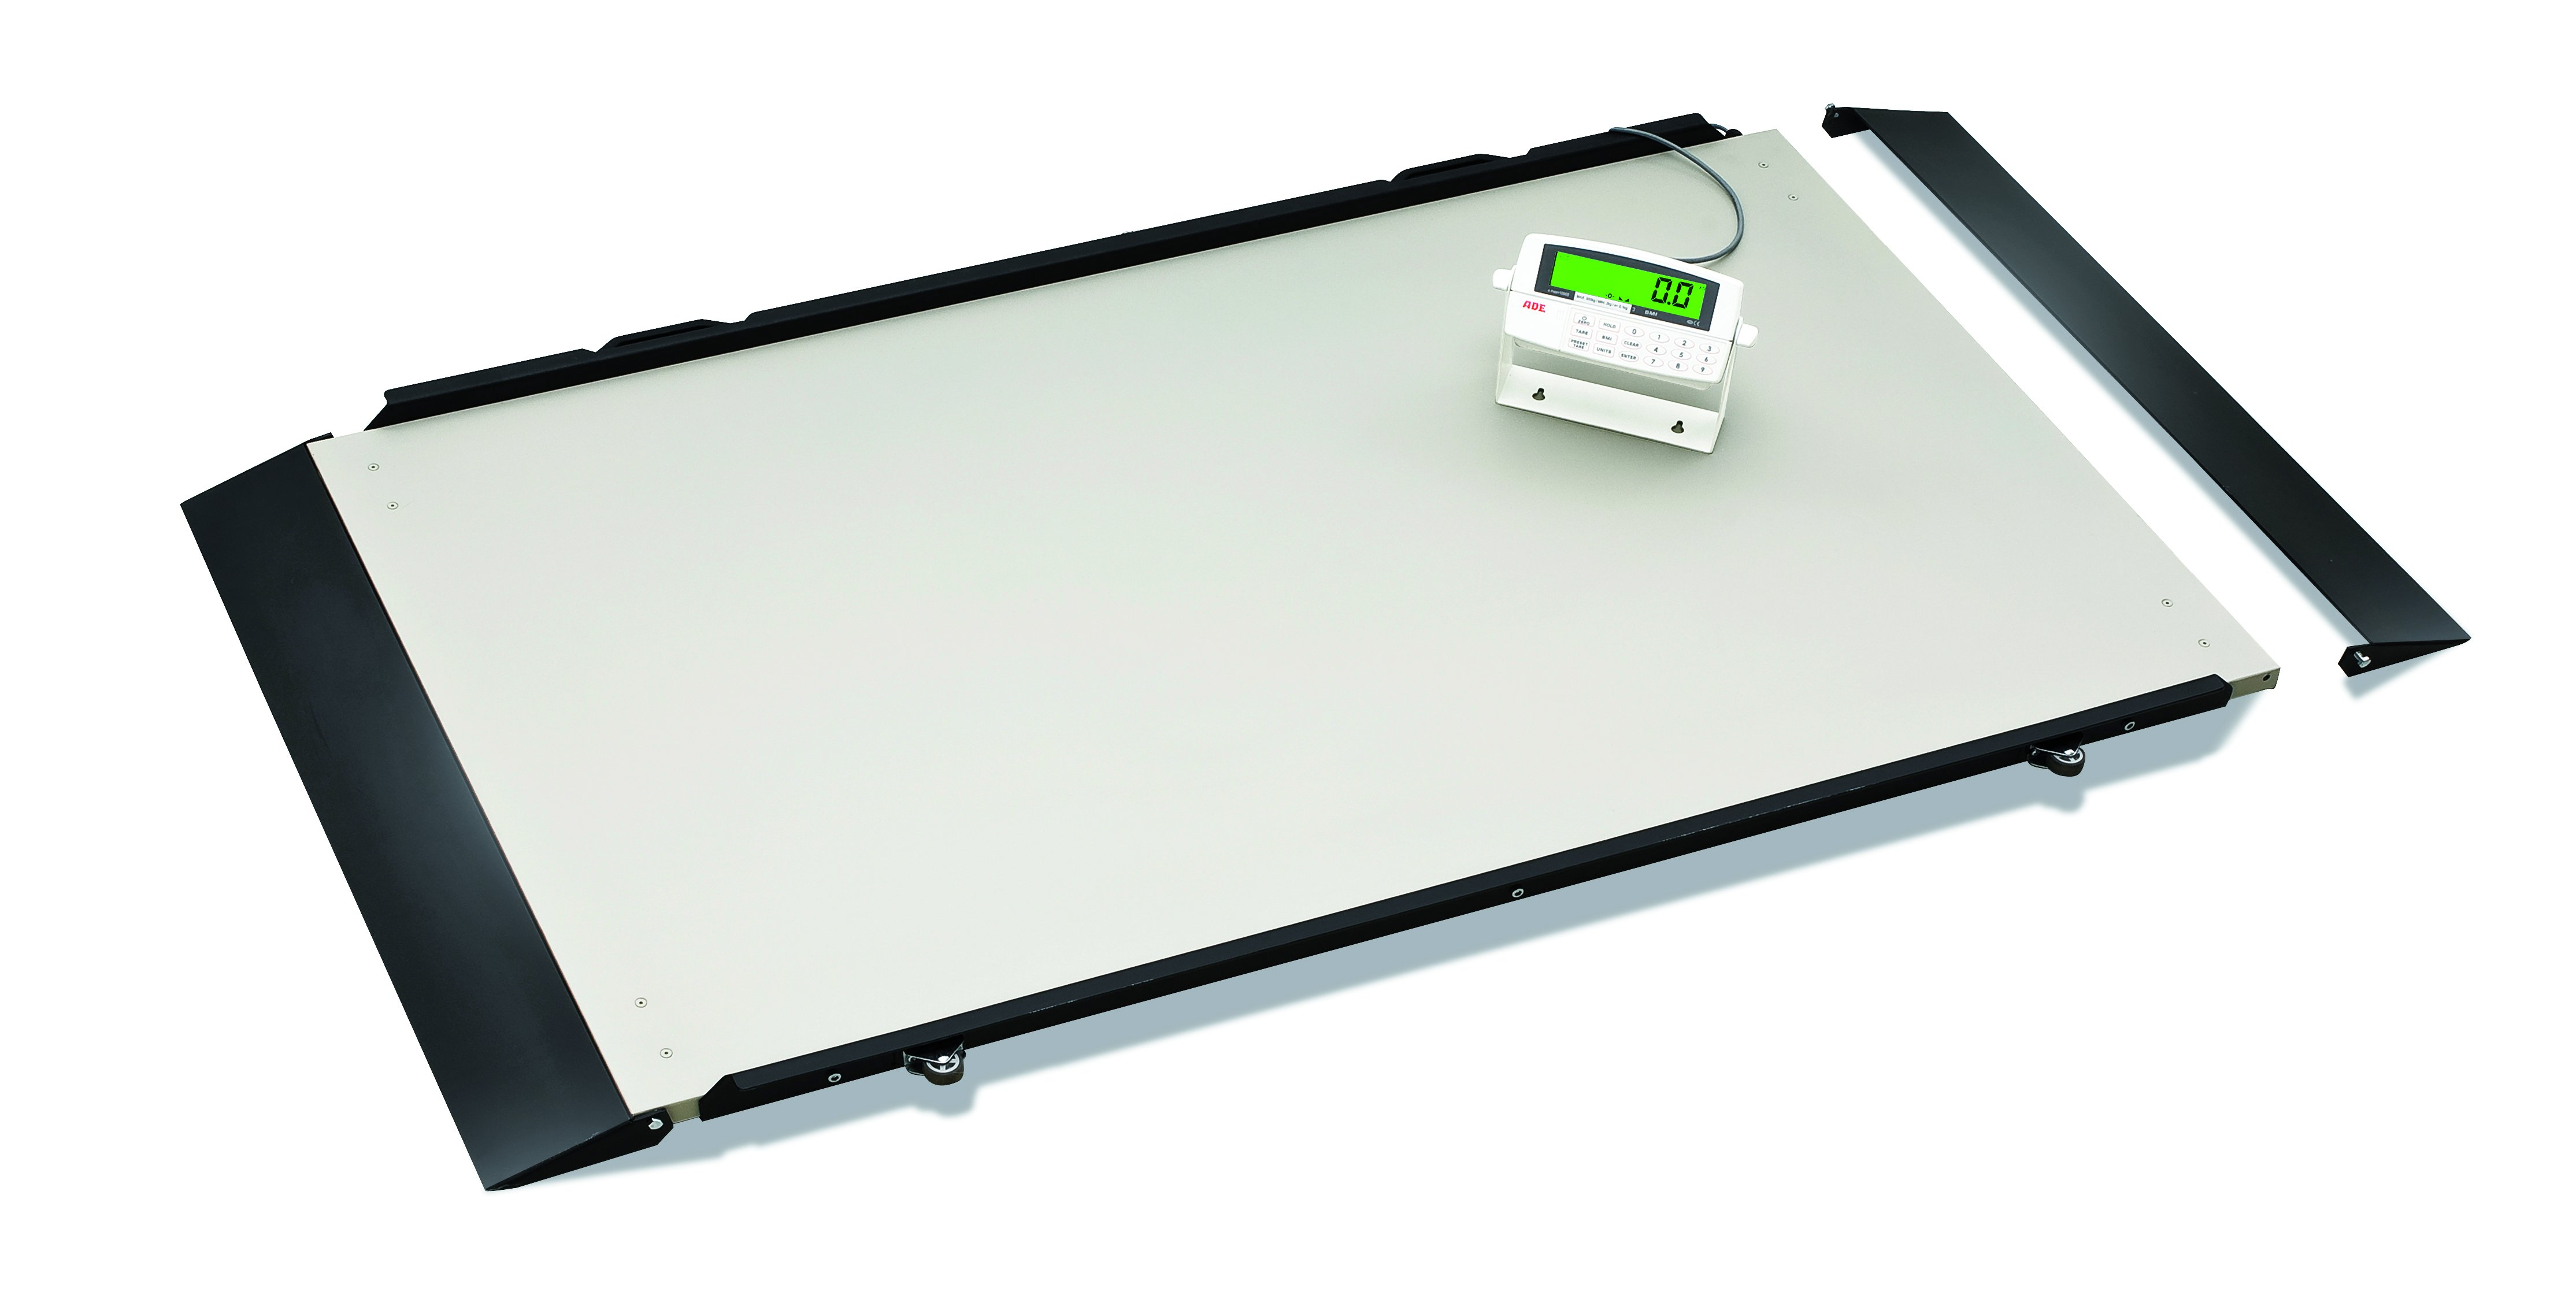 M500020-C Stretcher scale